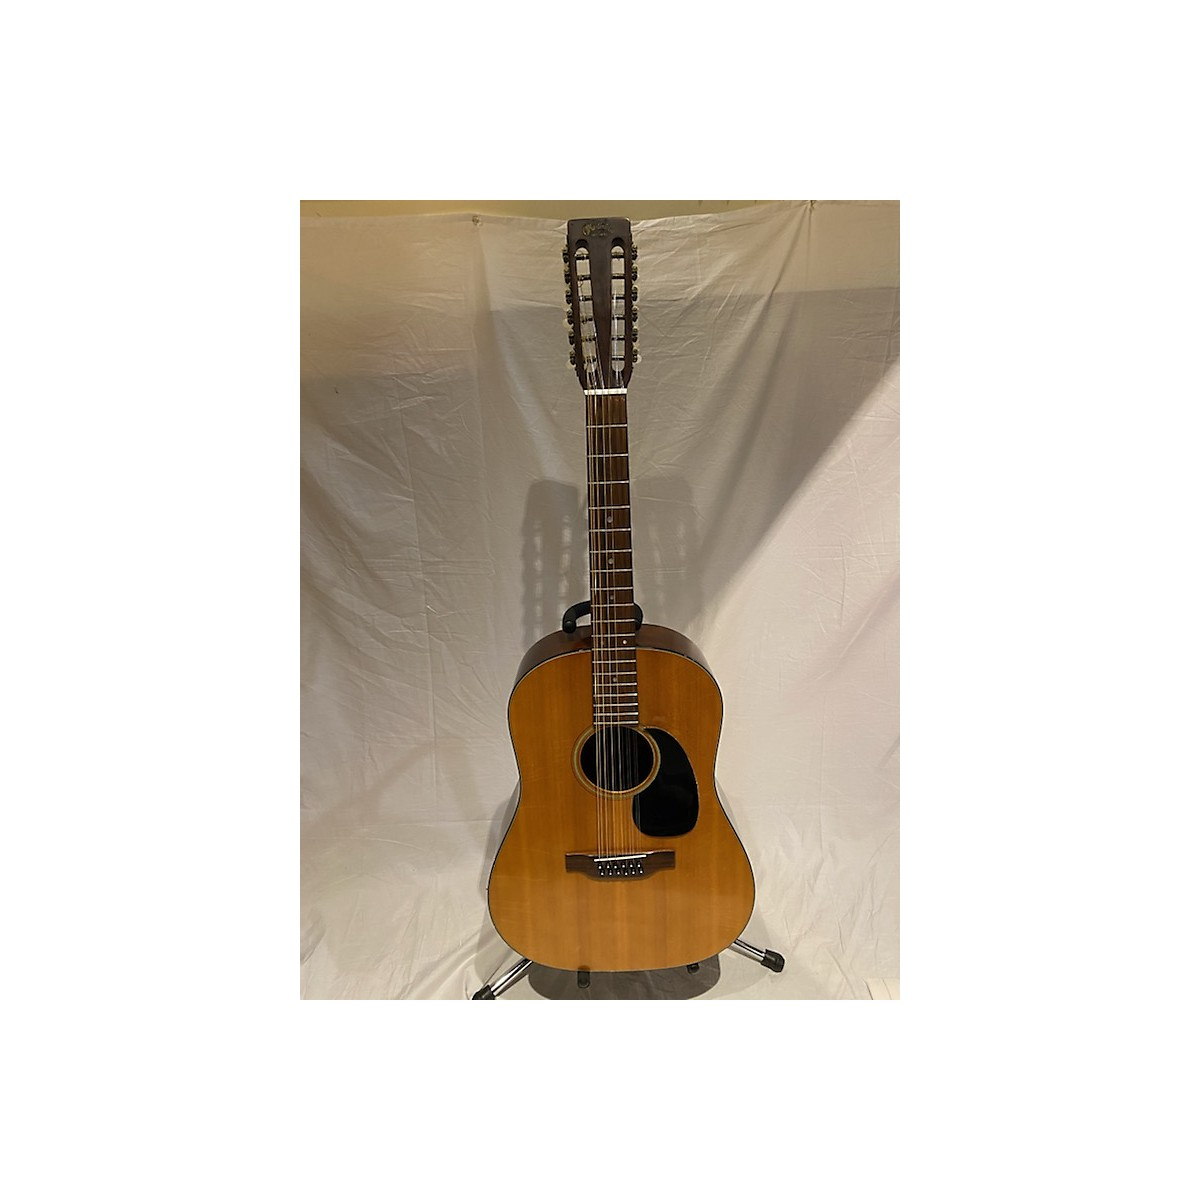 Martin 1974 D12-20 12 String Acoustic Guitar